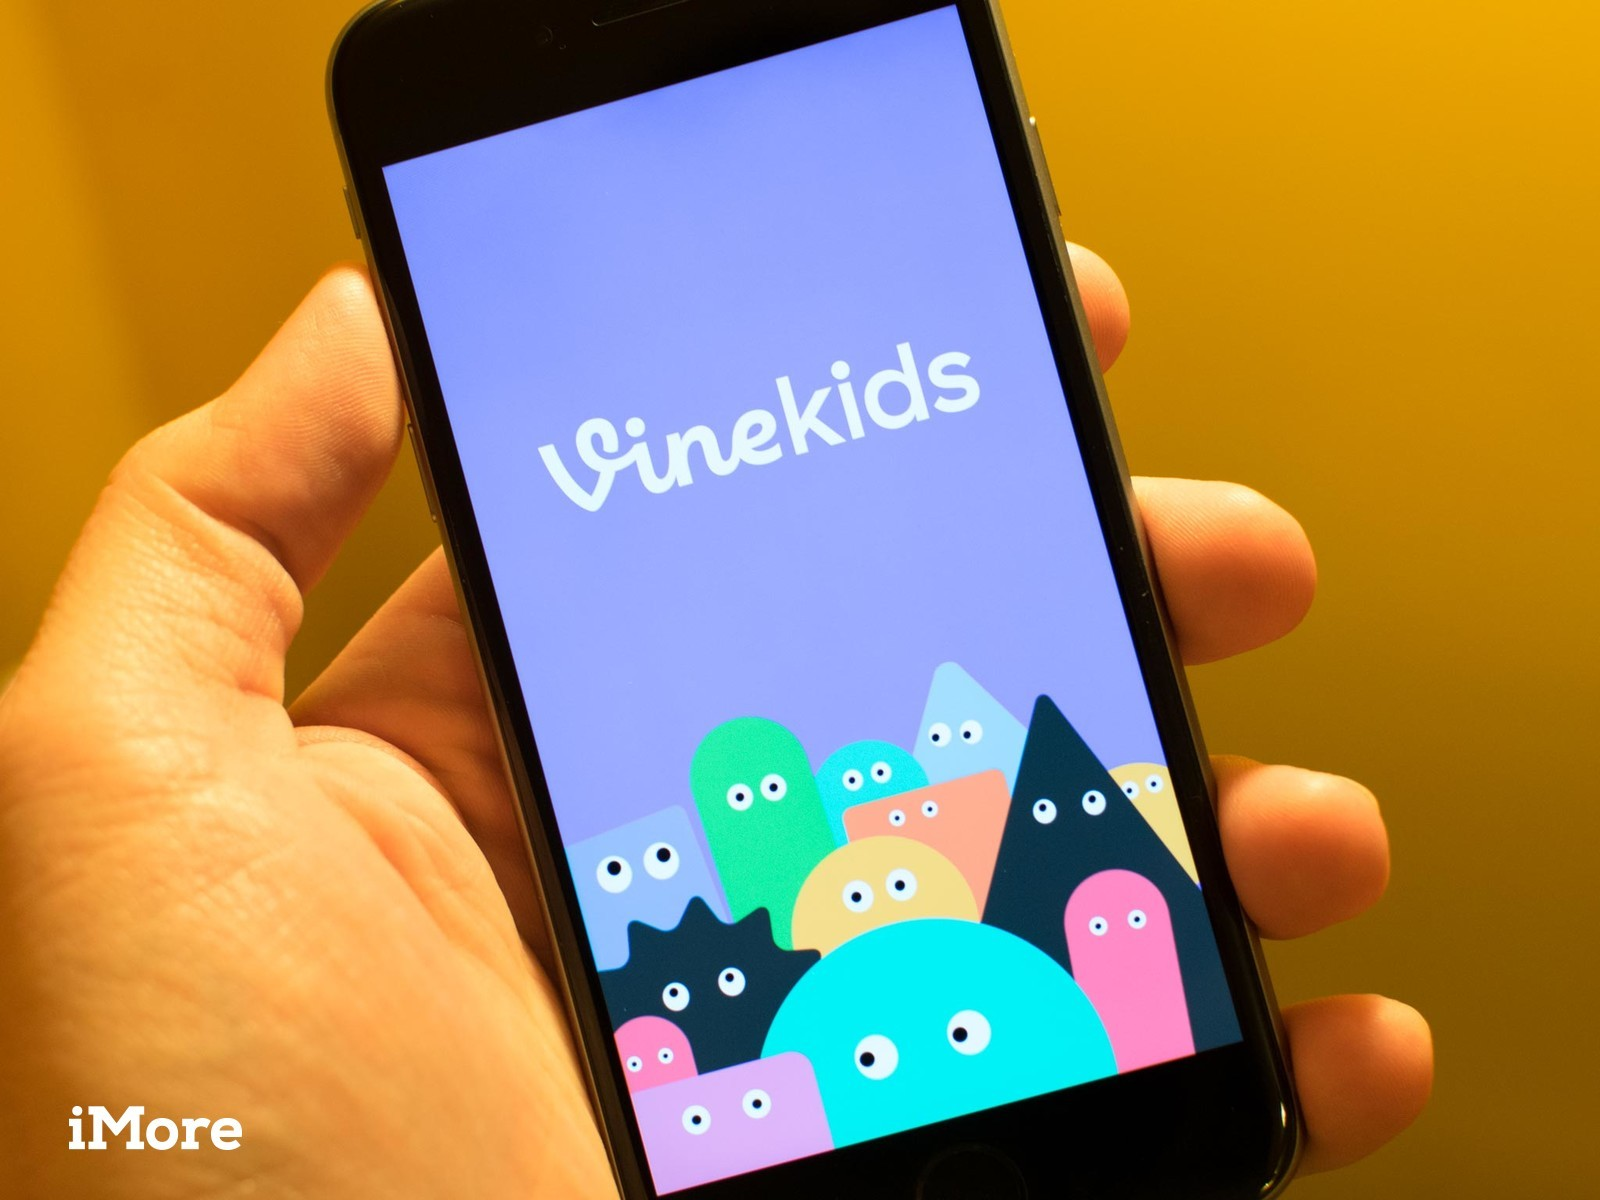 Vine Kids serves up child-friendly entertainment six seconds at a time